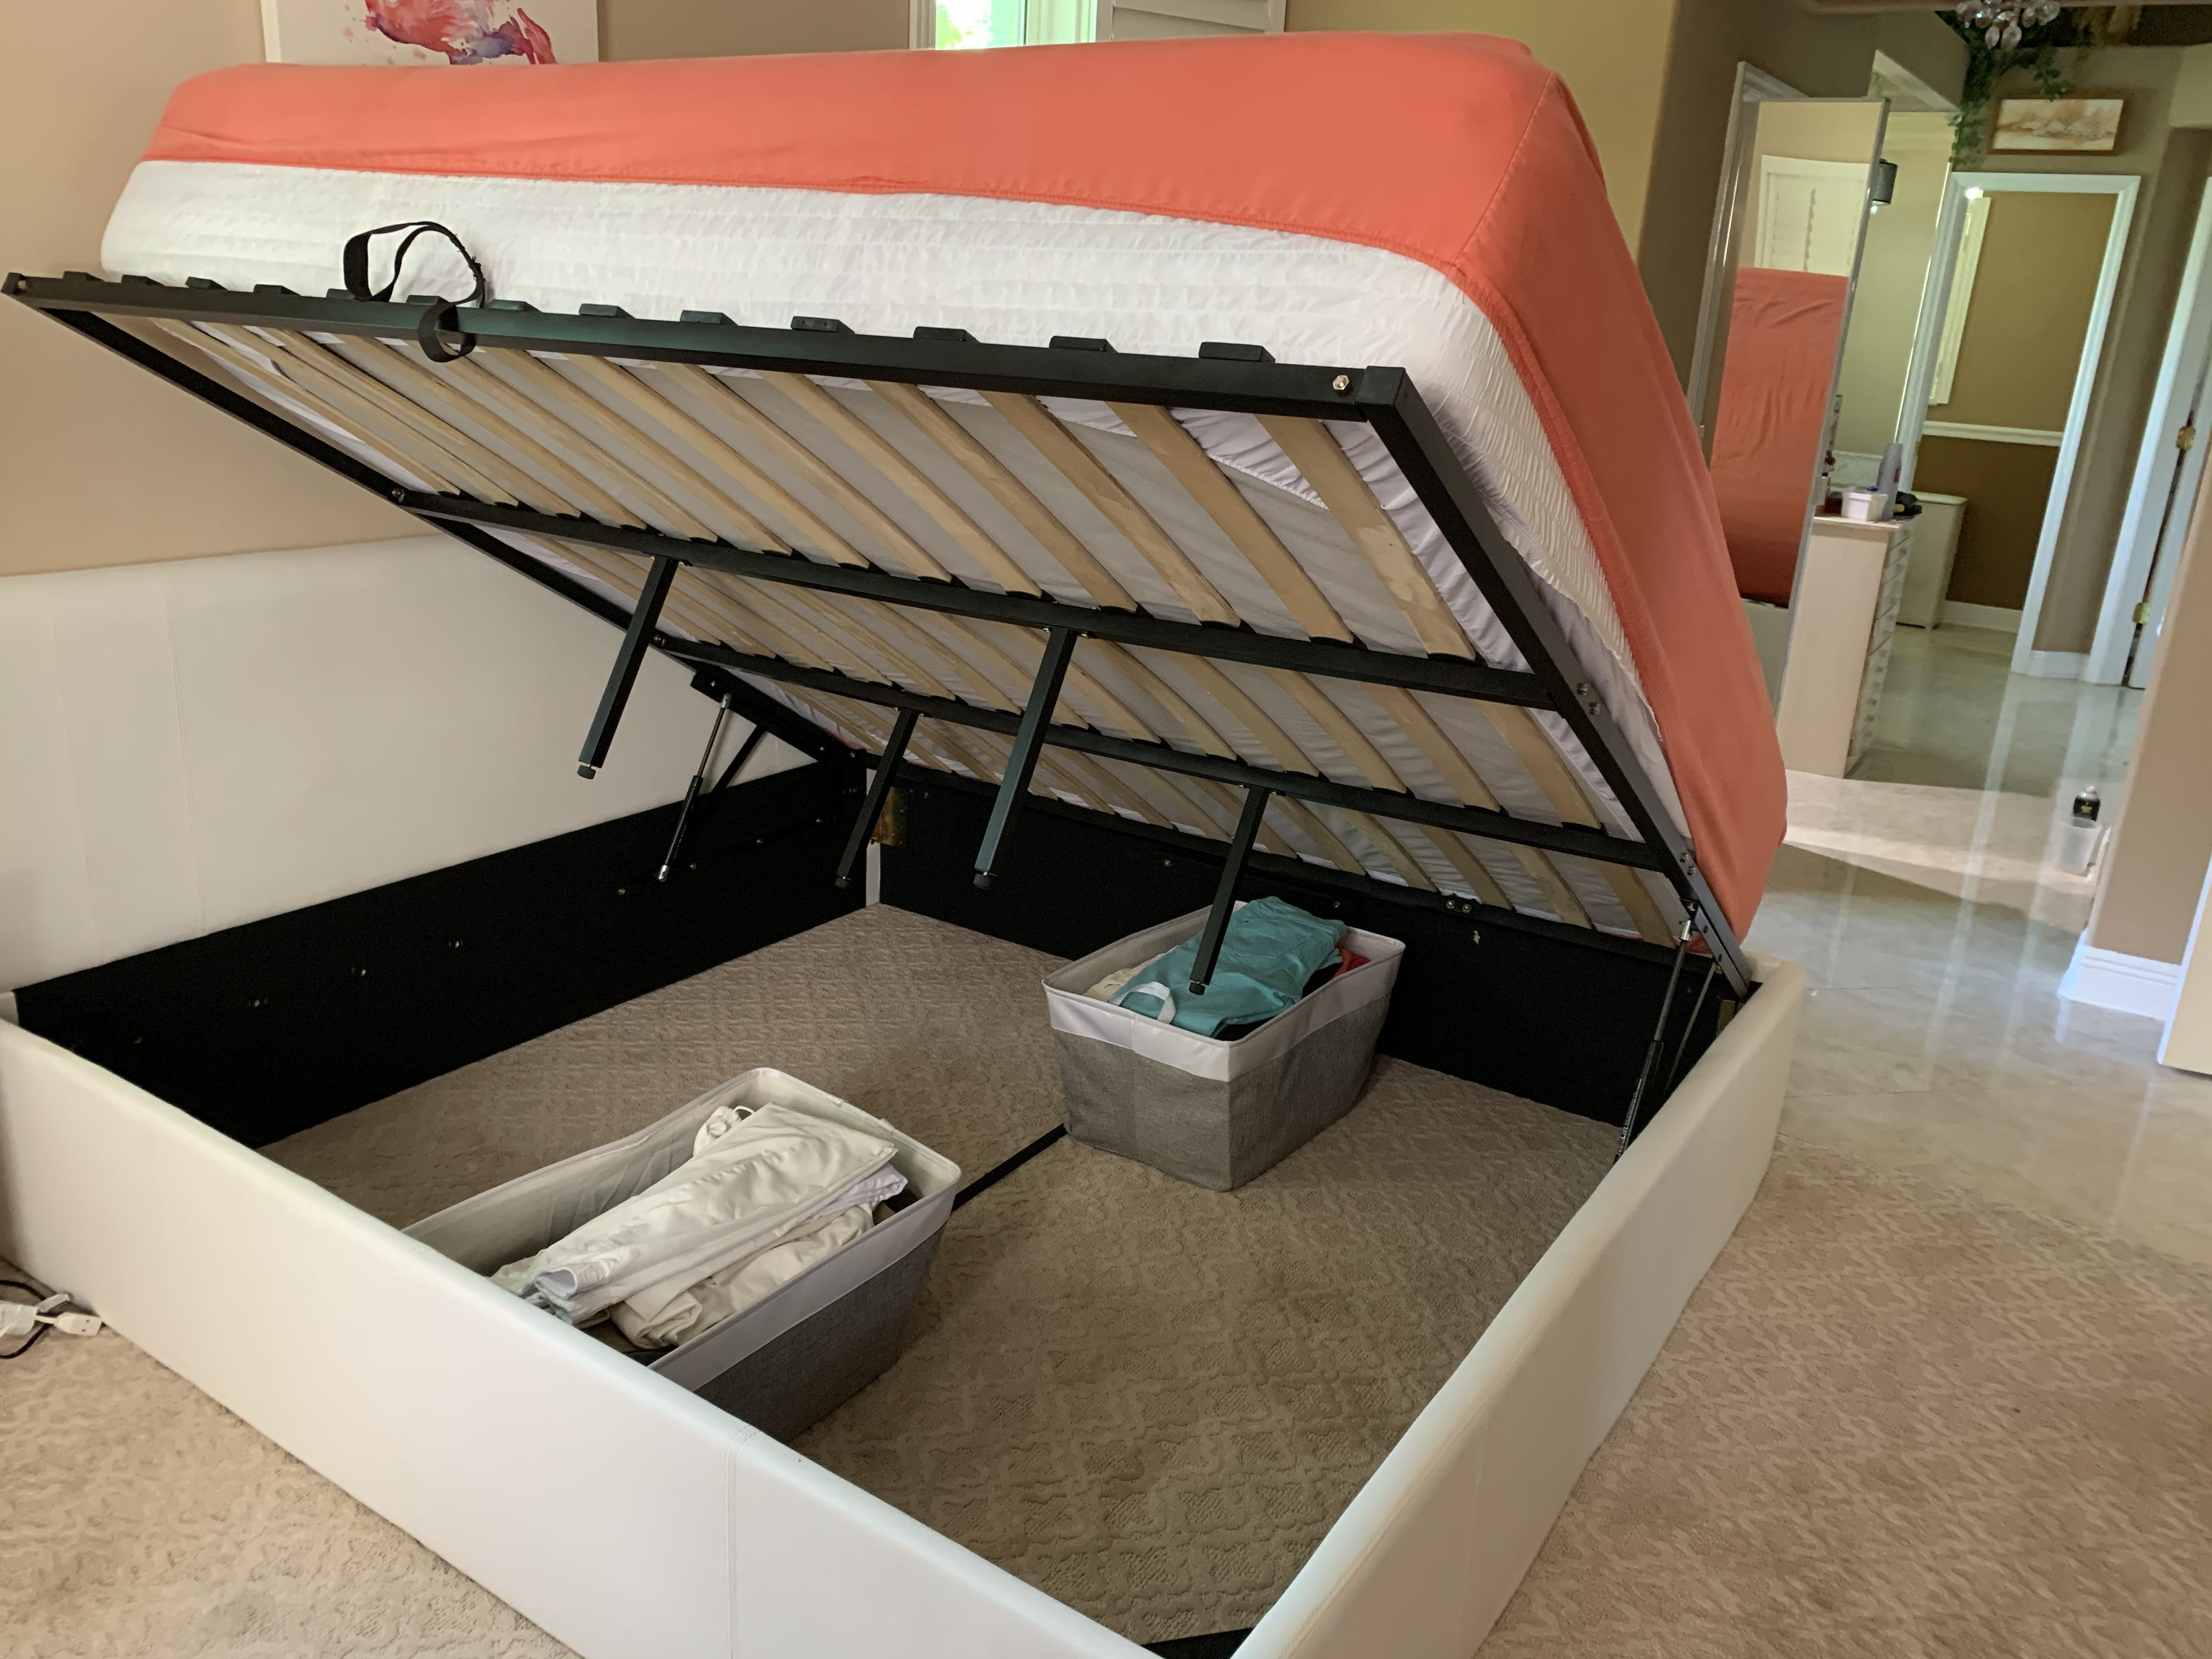 Reveal Twin Side Lifting Storage Bed Expand Furniture Folding Tables Smarter Wall Beds Space Savers